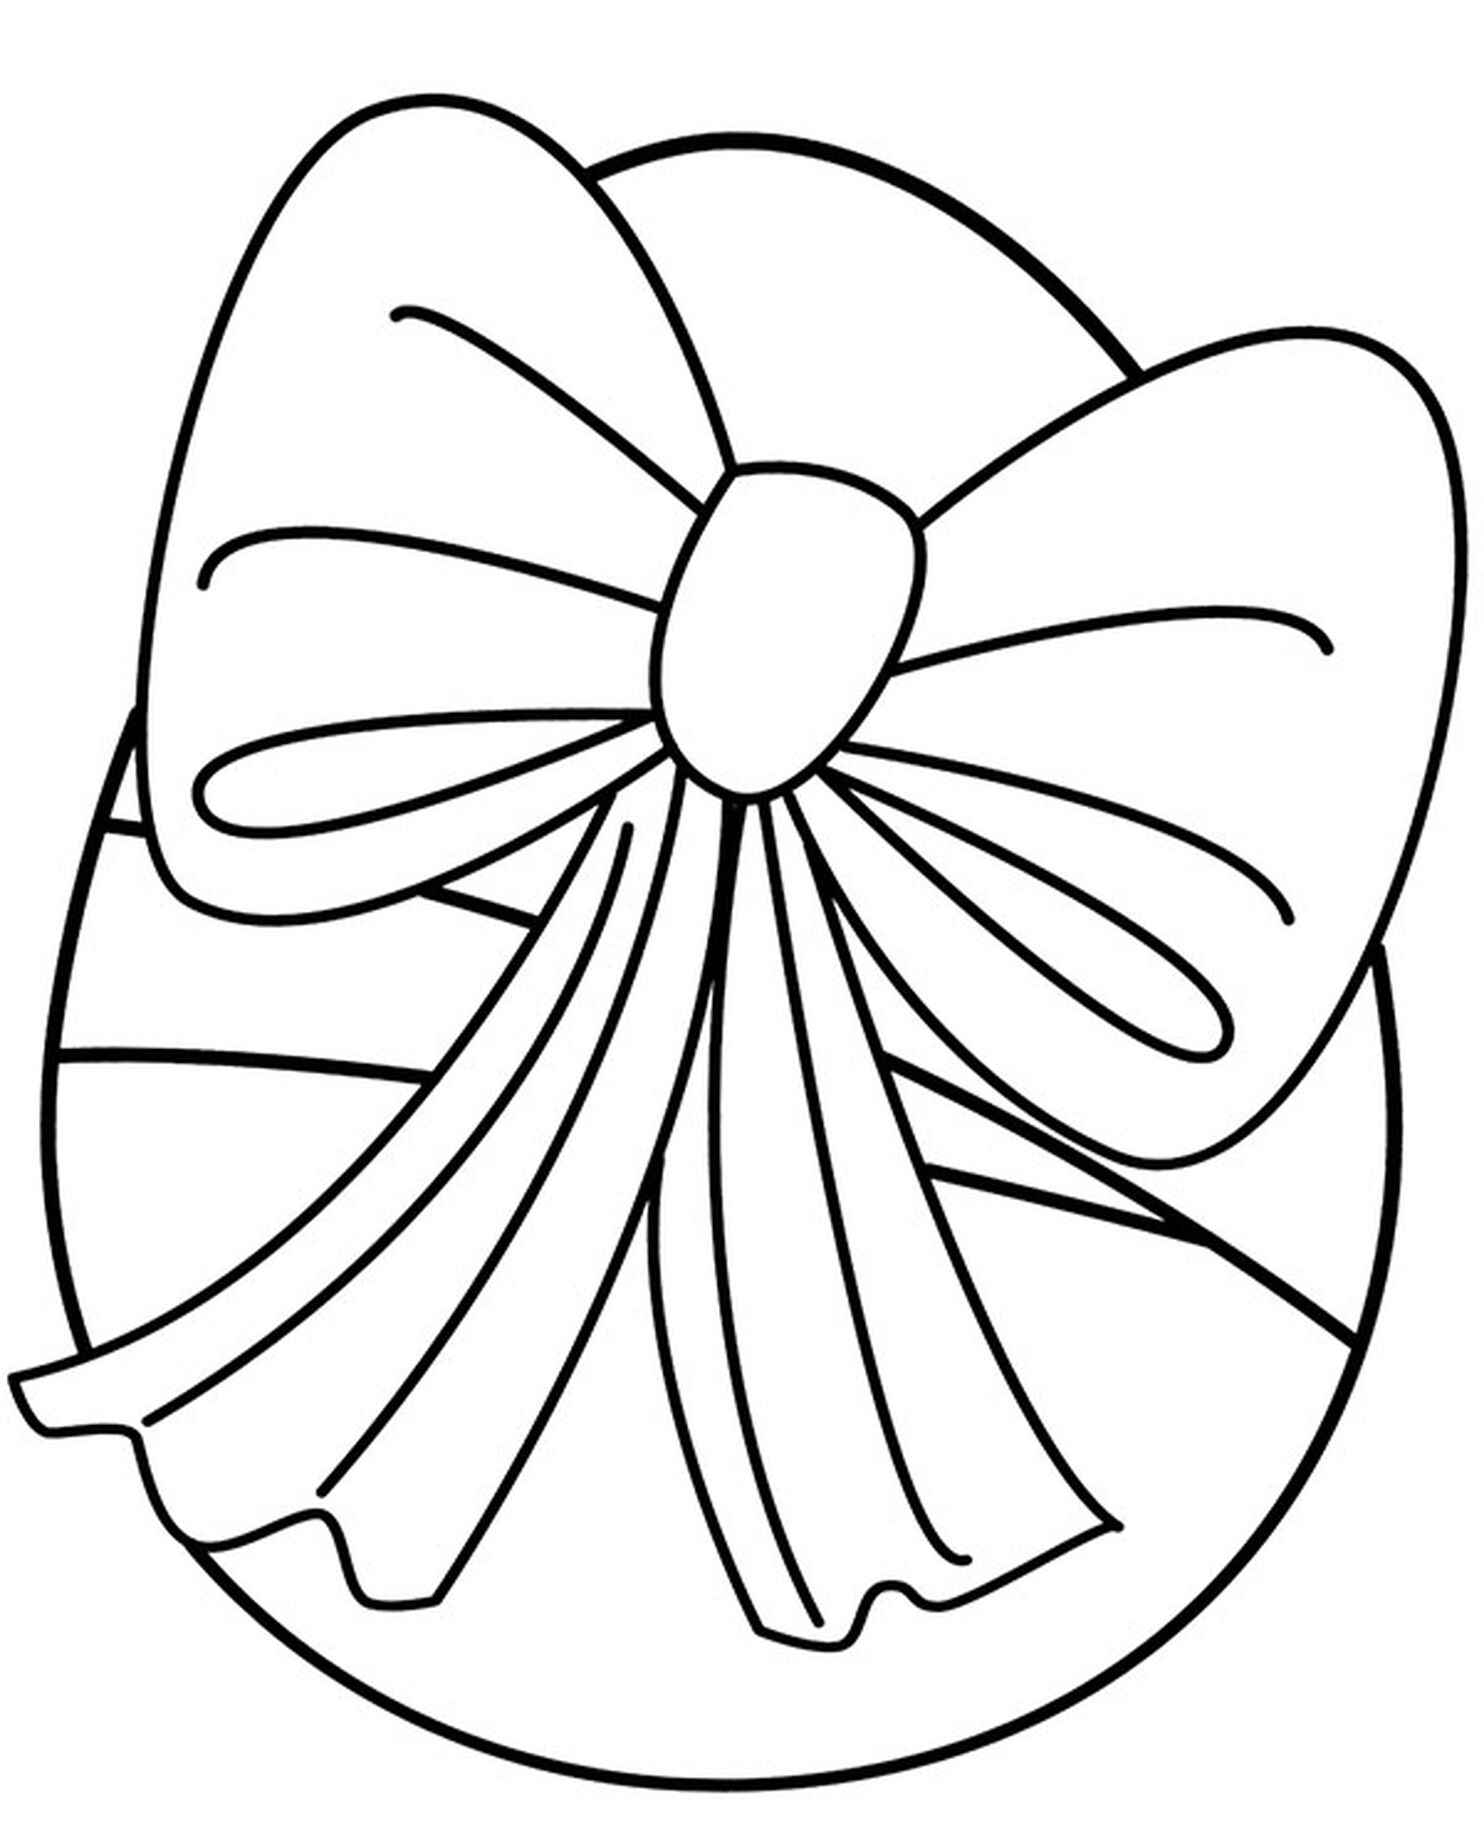 Easter Egg With A Ribbon Coloring Page